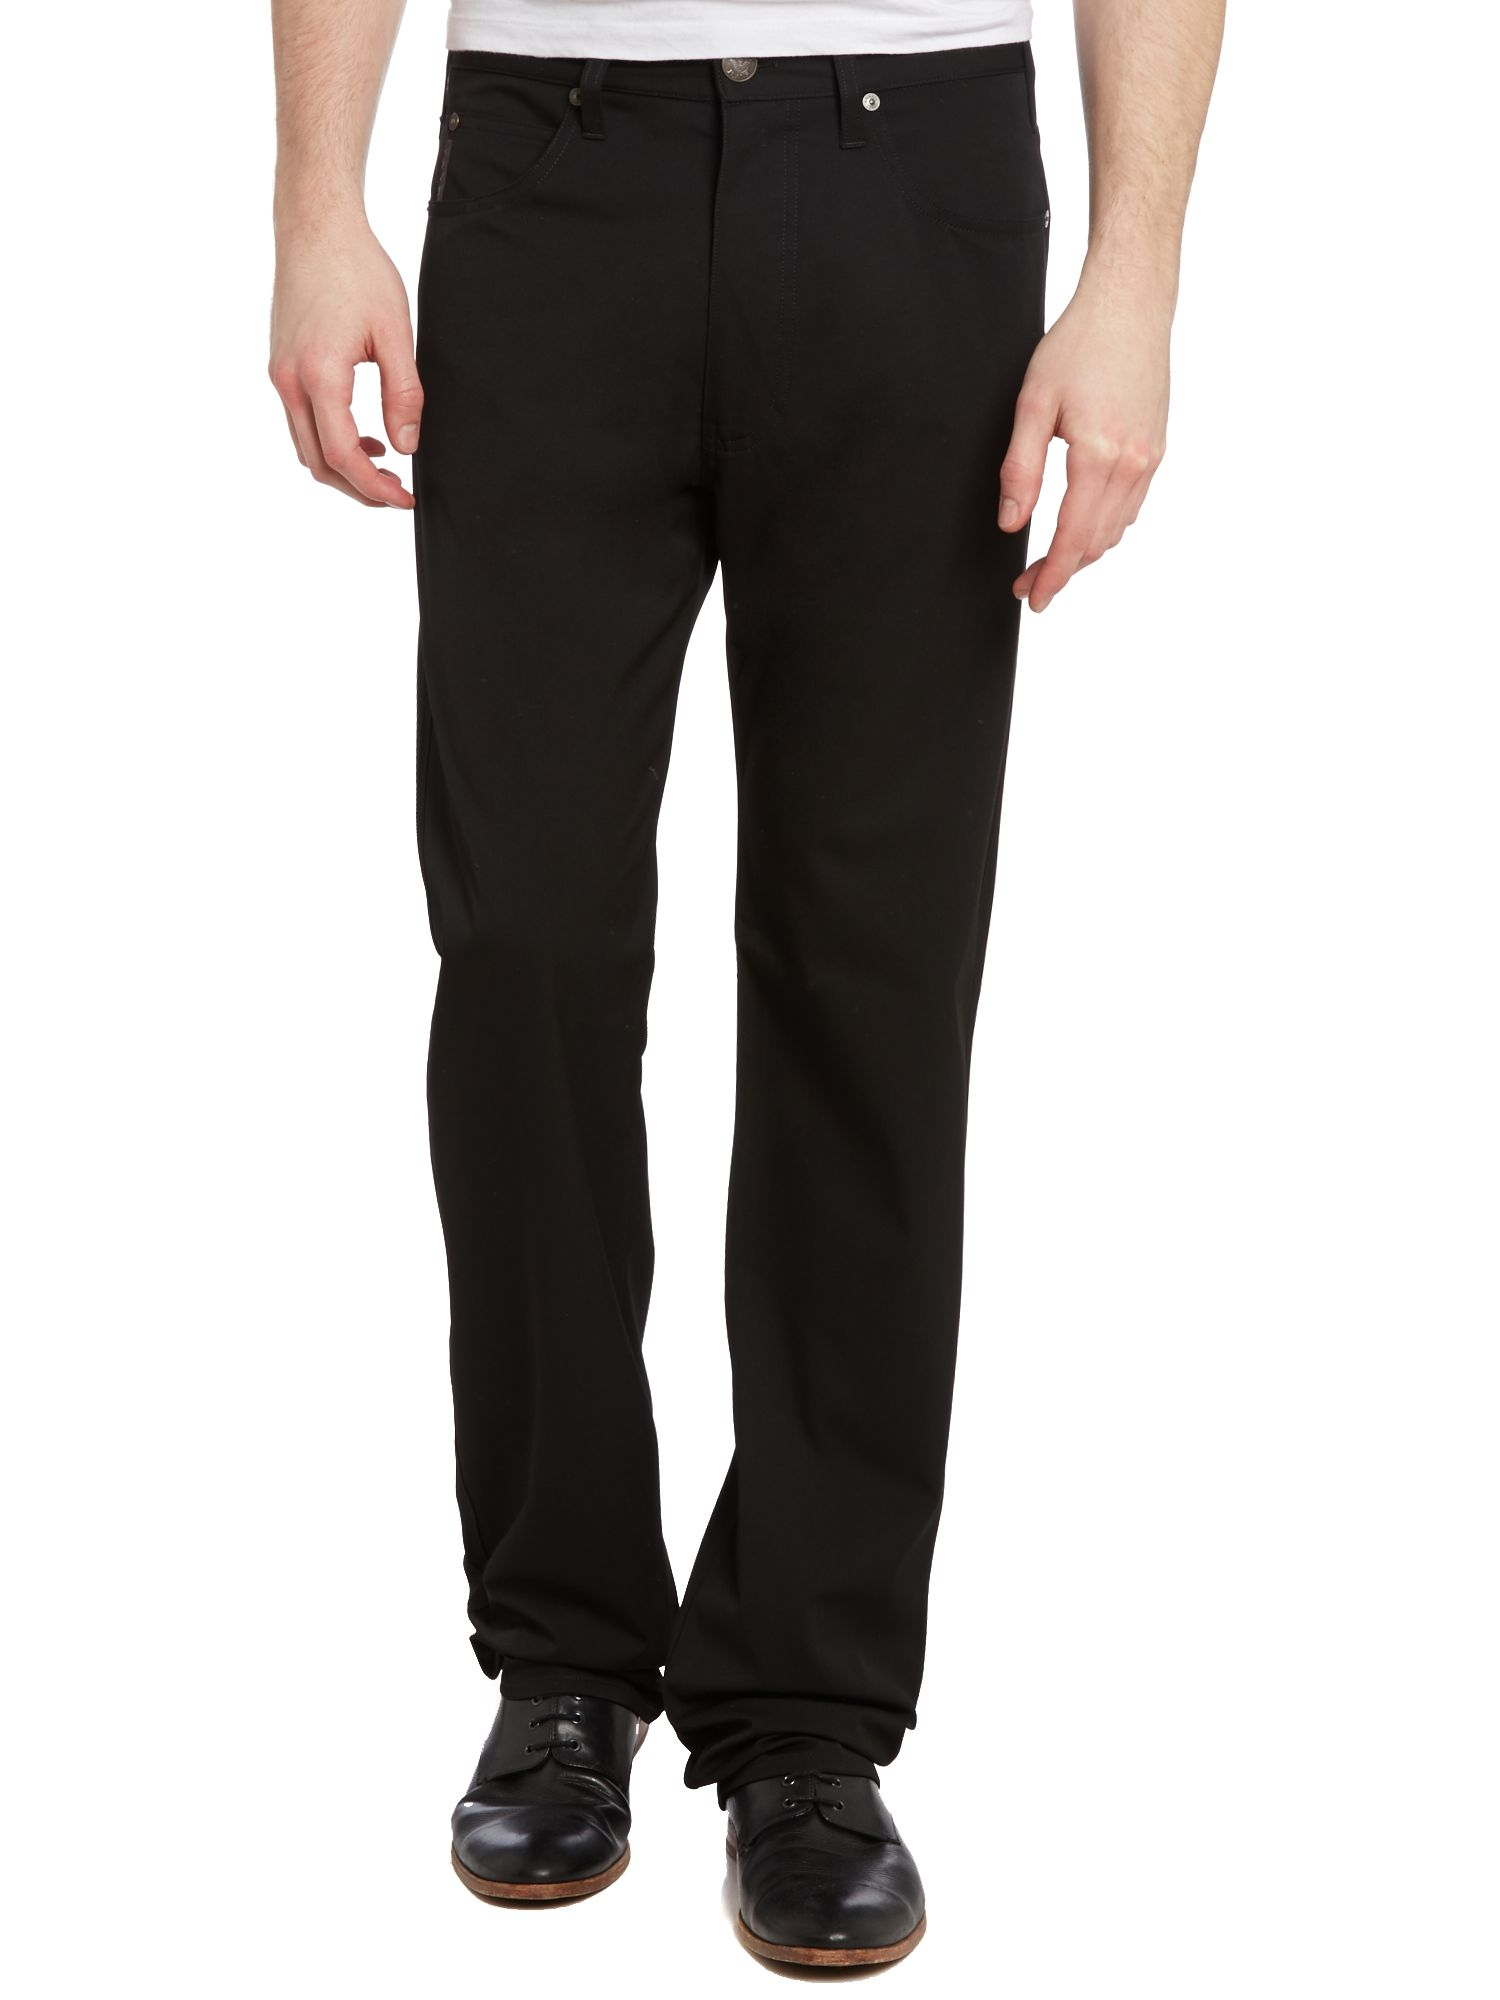 Chino work trousers